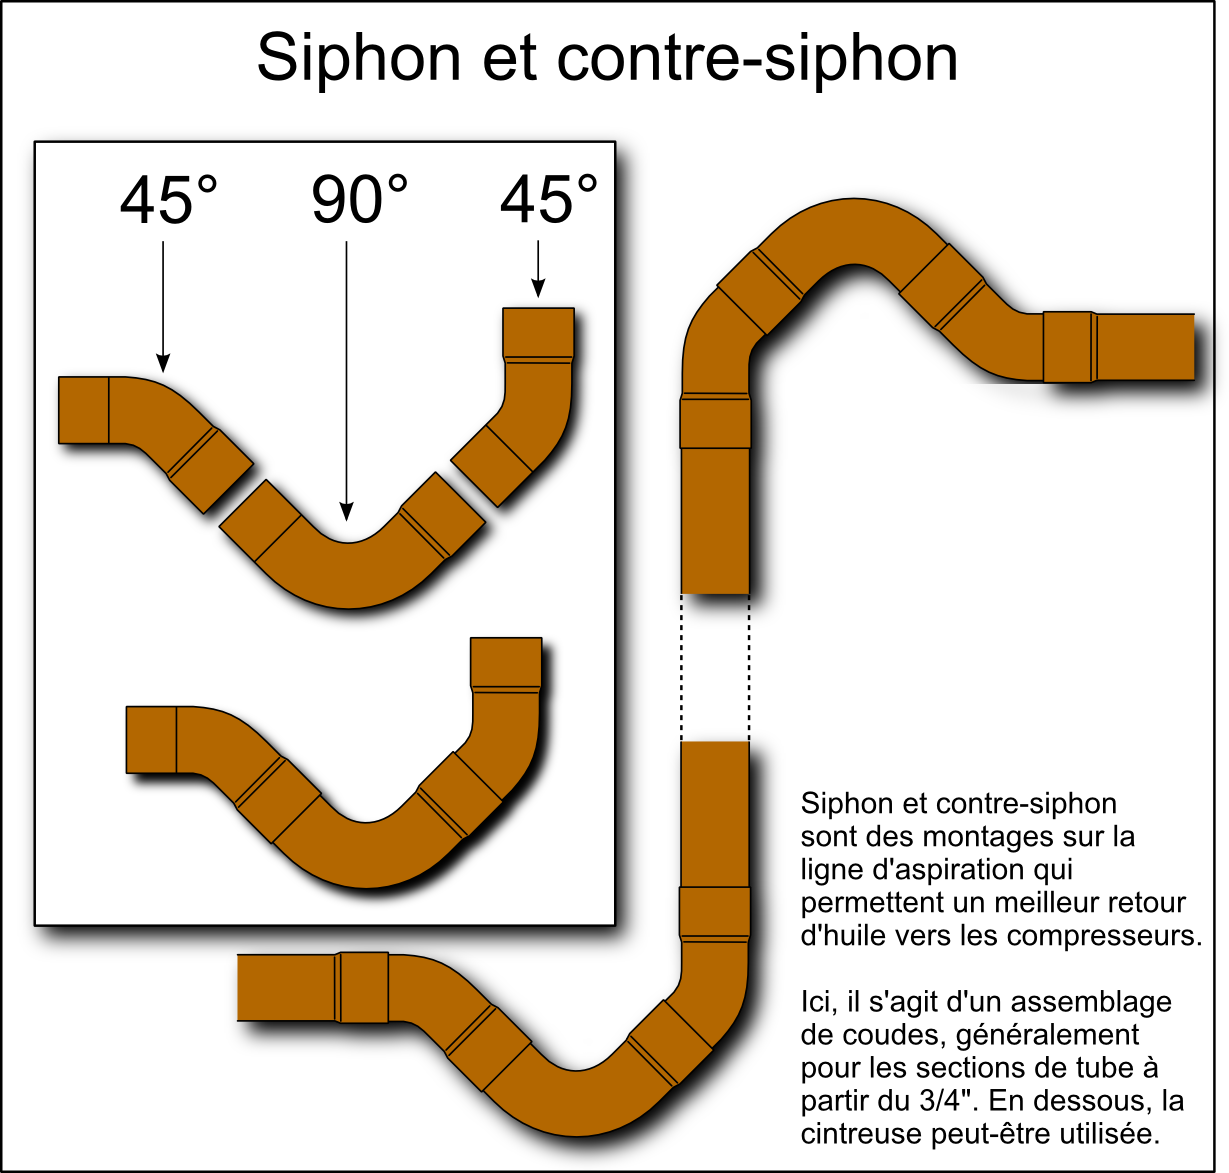 fichier:phpage.fr-montage-siphon-001 — tifcc